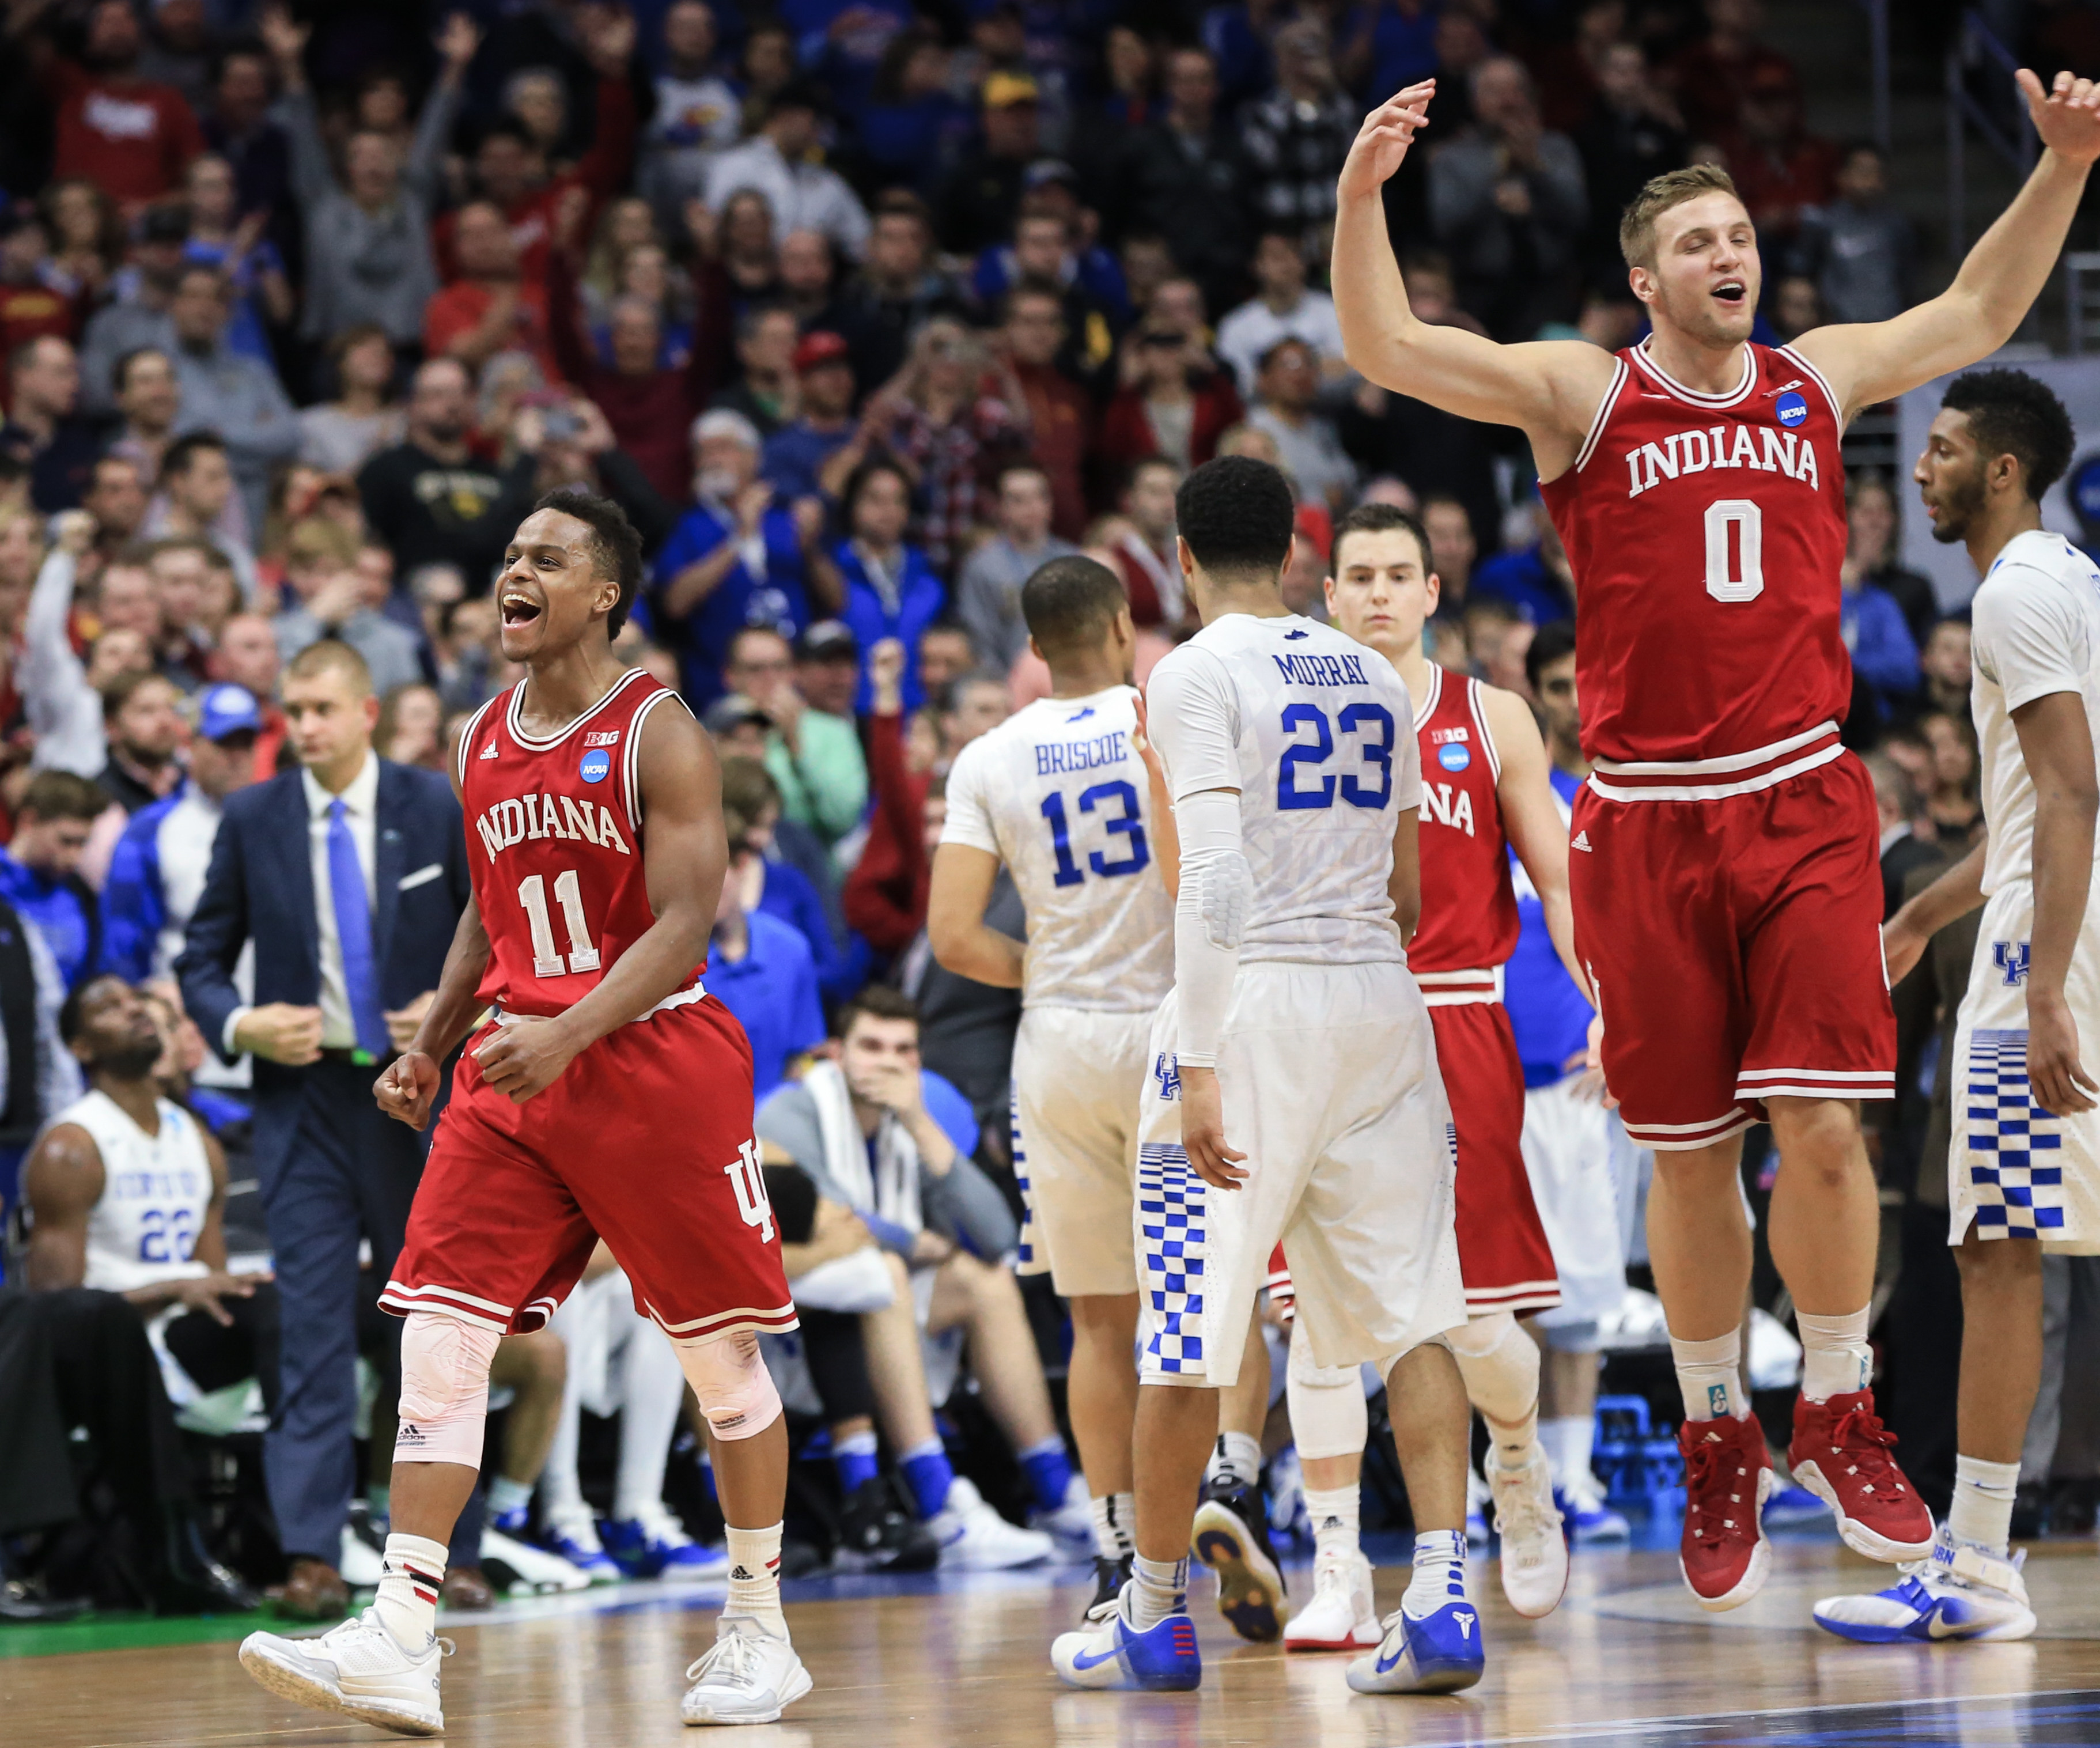 Indiana's Kevin Yogi Ferrell (11) and Max Bielfeldt (0) celebrate the team's 73-67 win over Kentucky in a second-round men's college basketball game in the NCAA Tournament in Des Moines, Iowa, Saturday, March 19, 2016. (AP Photo/Nati Harnik)